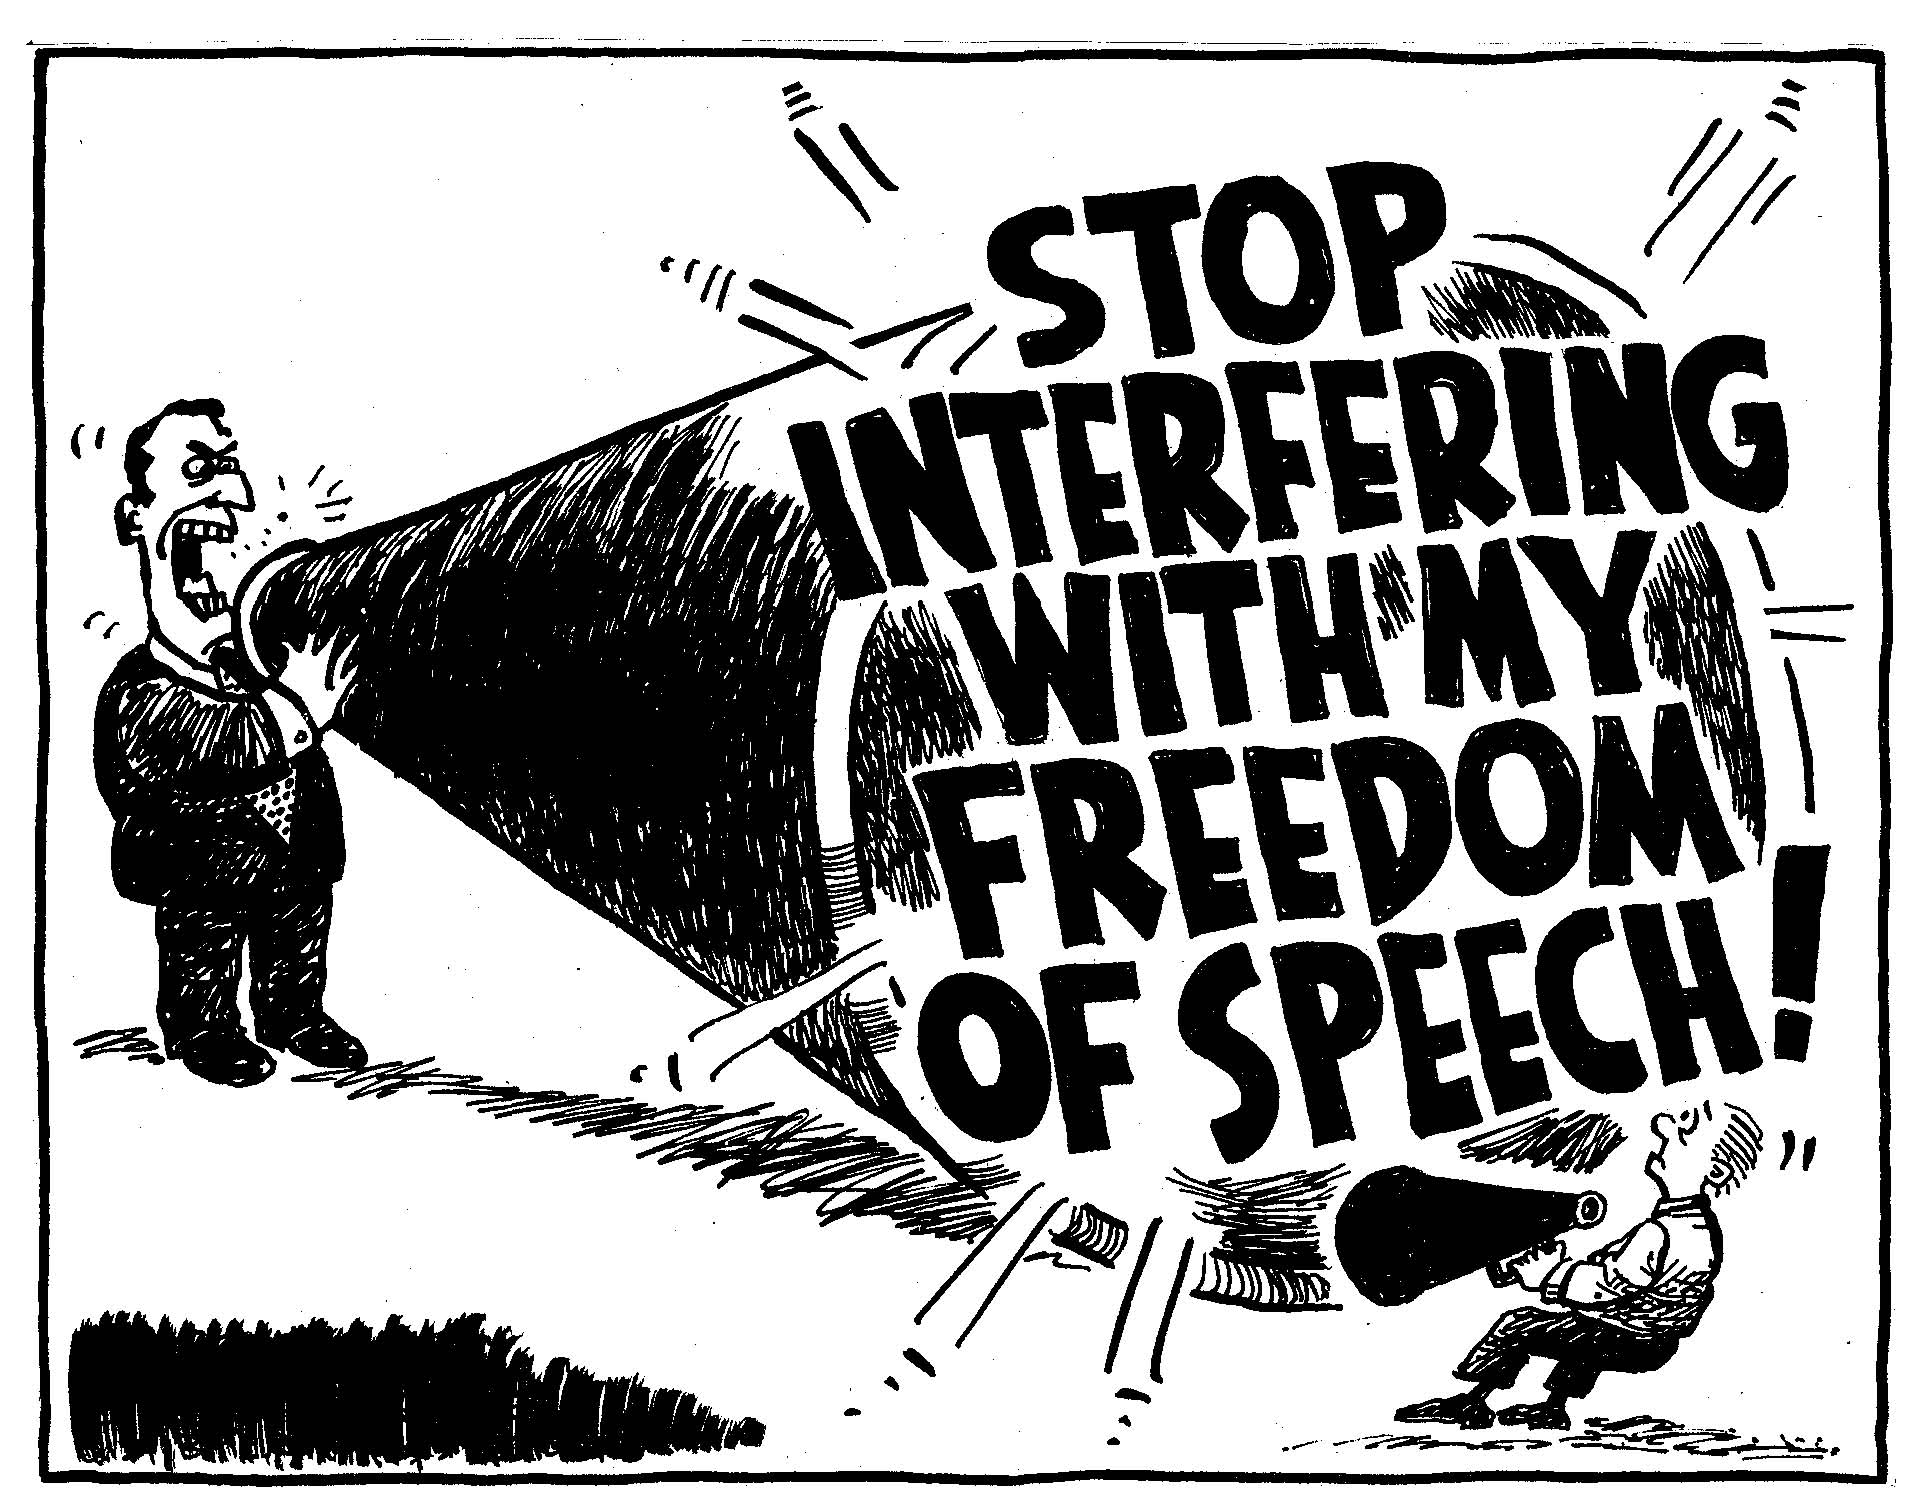 Freedom-of-Speech-megaphone.jpg